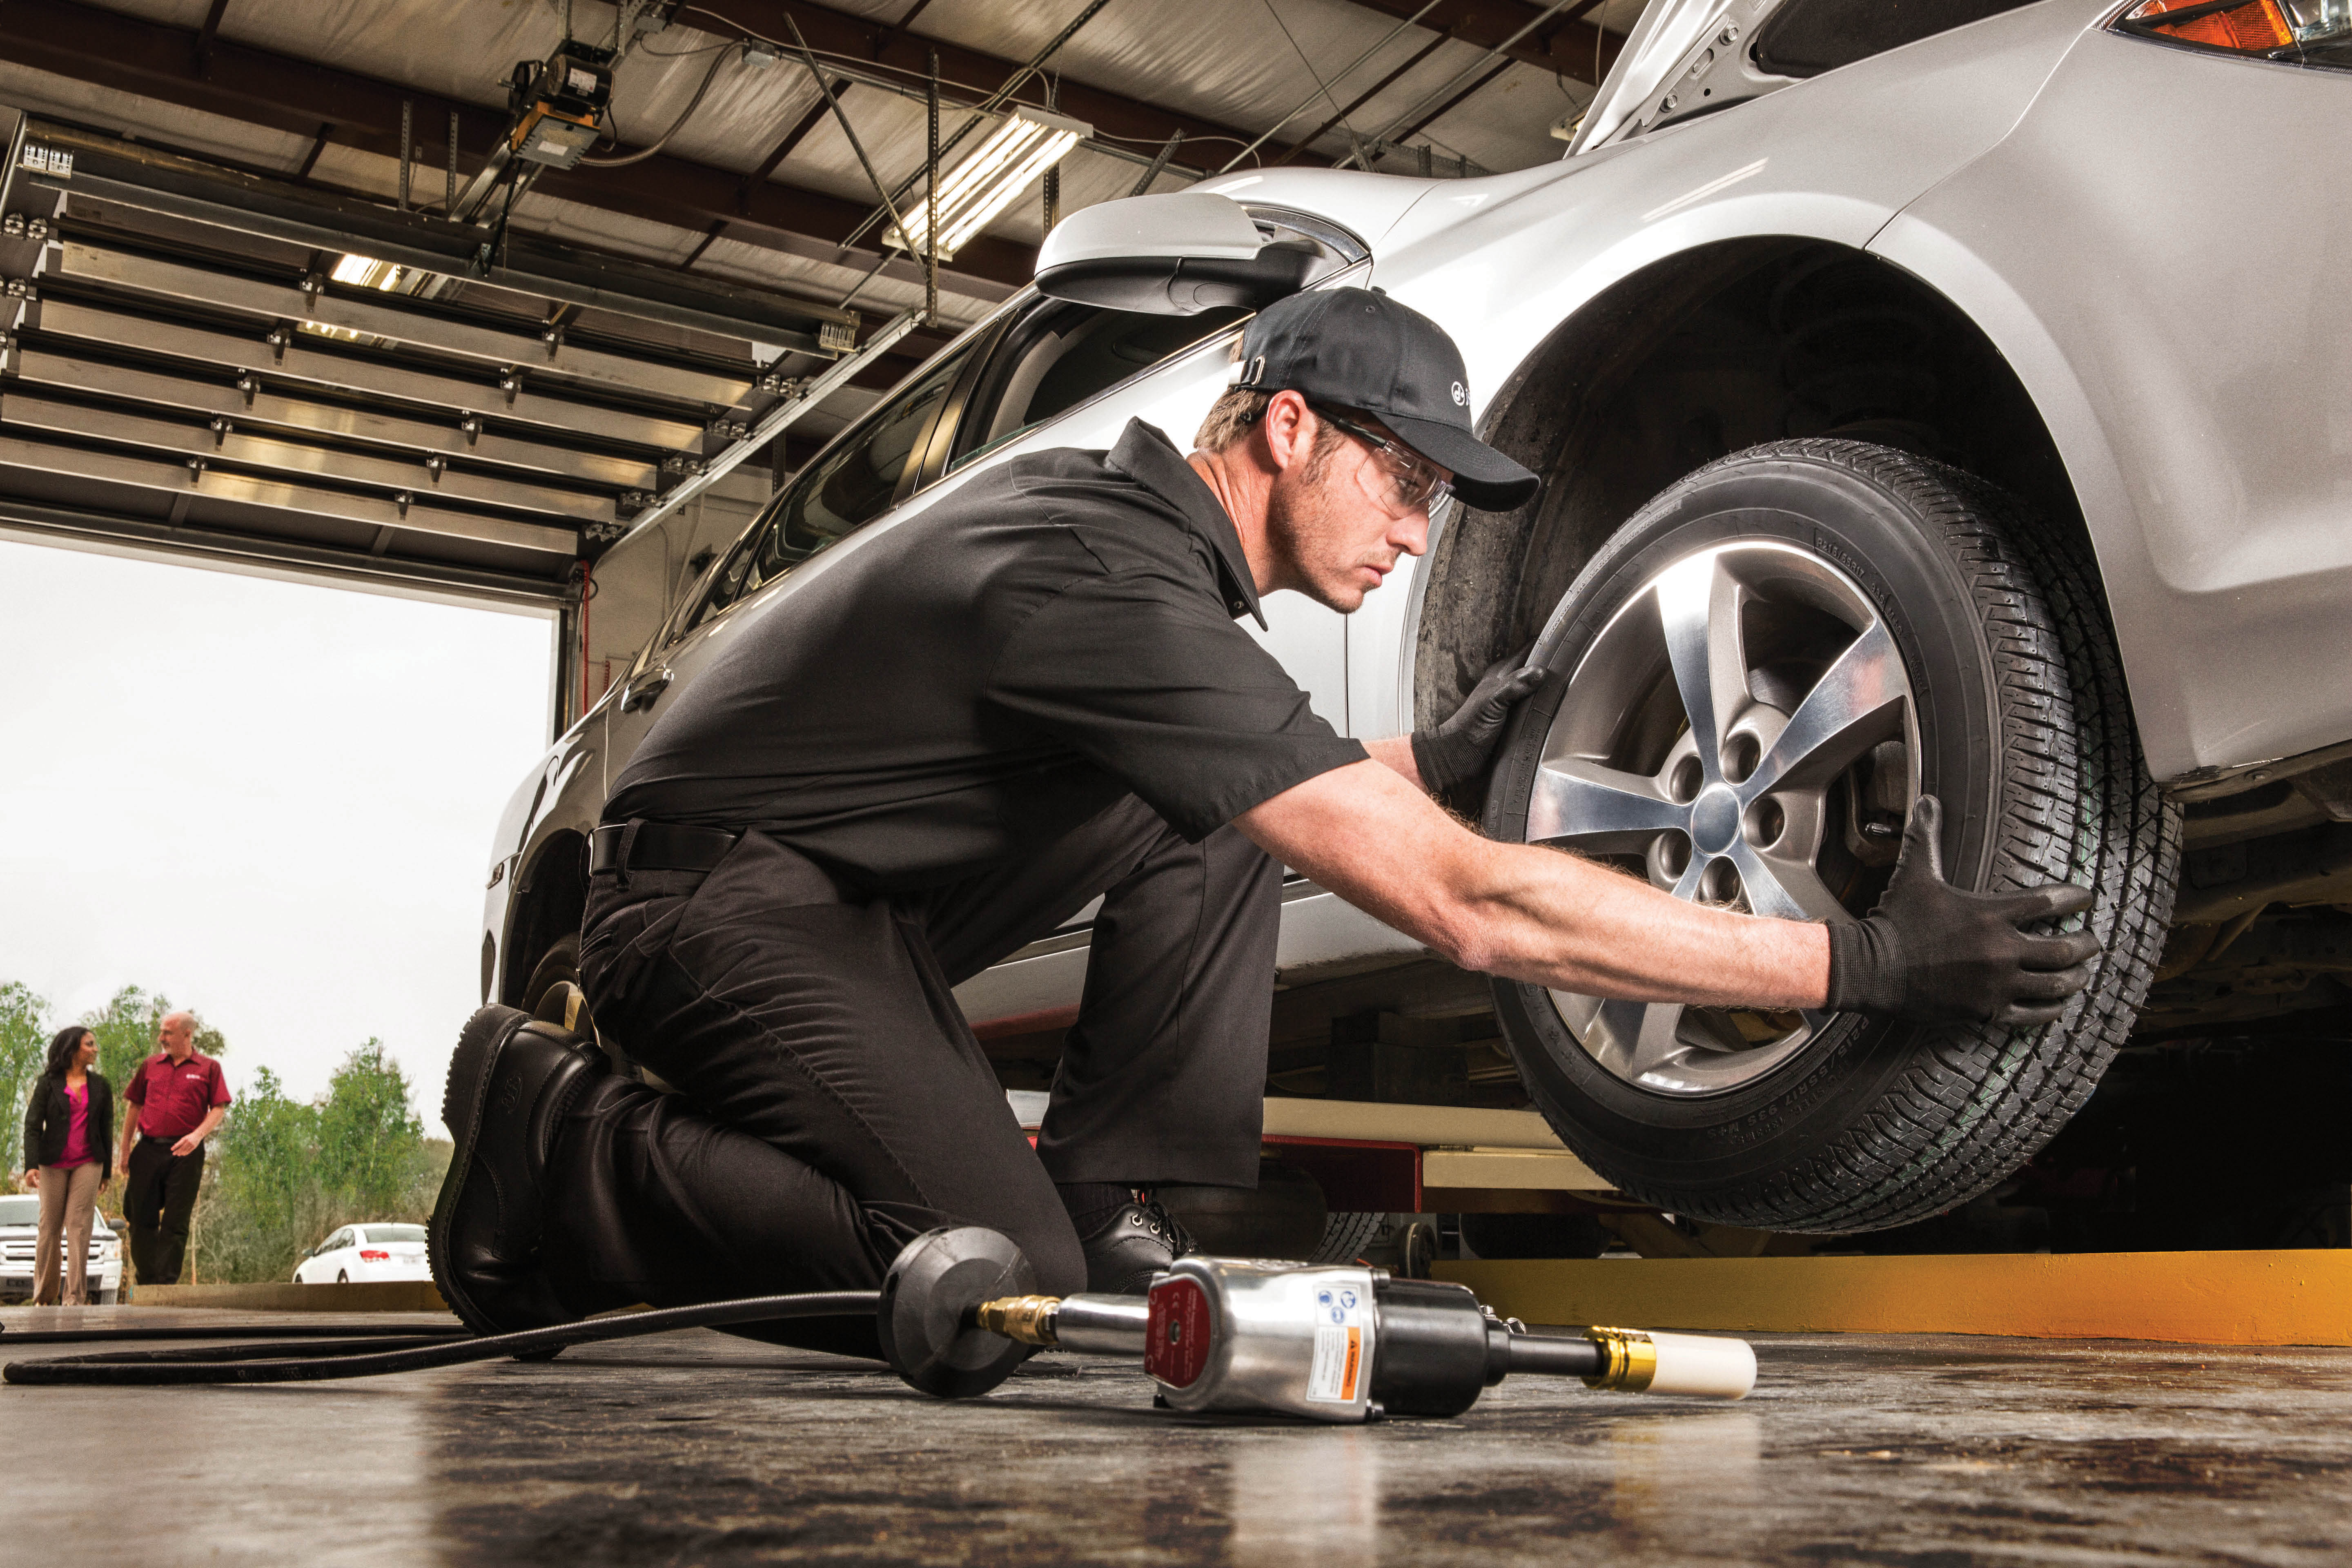 Jiffy Lube Auto Service performs tire rotation in Long Beach, CA